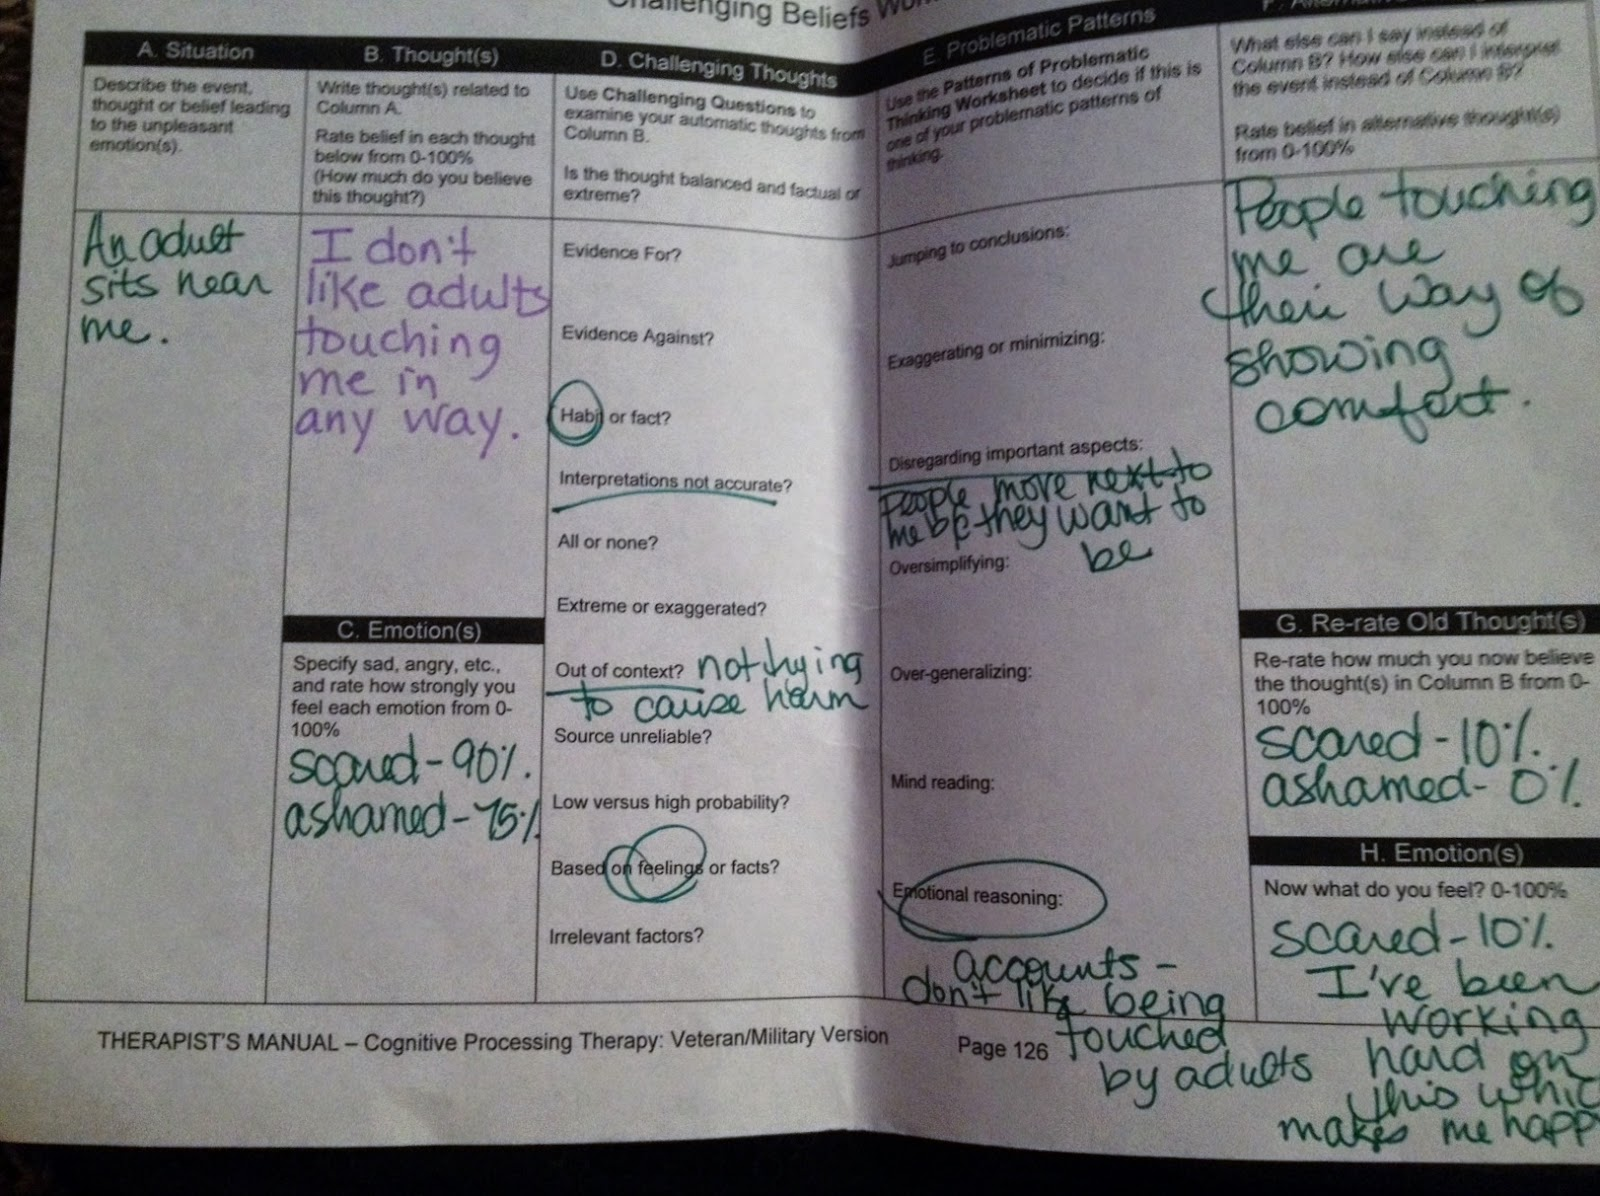 My Story Redeeming Rose 20 Session 7 New Challenging Beliefs Worksheets